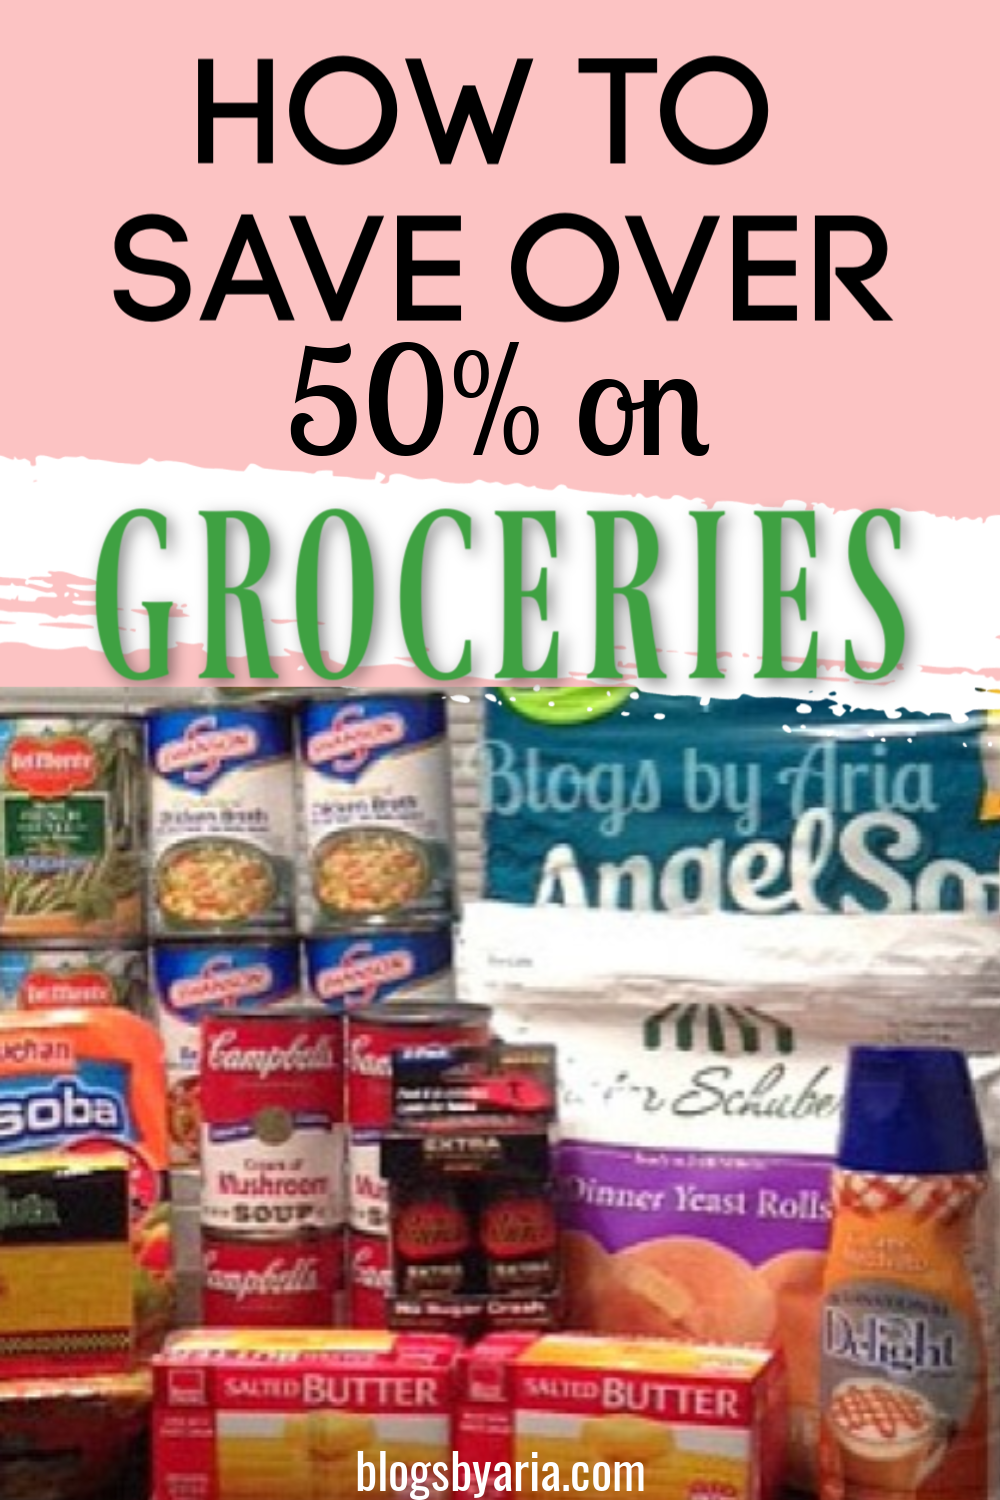 how to save over half off on groceries